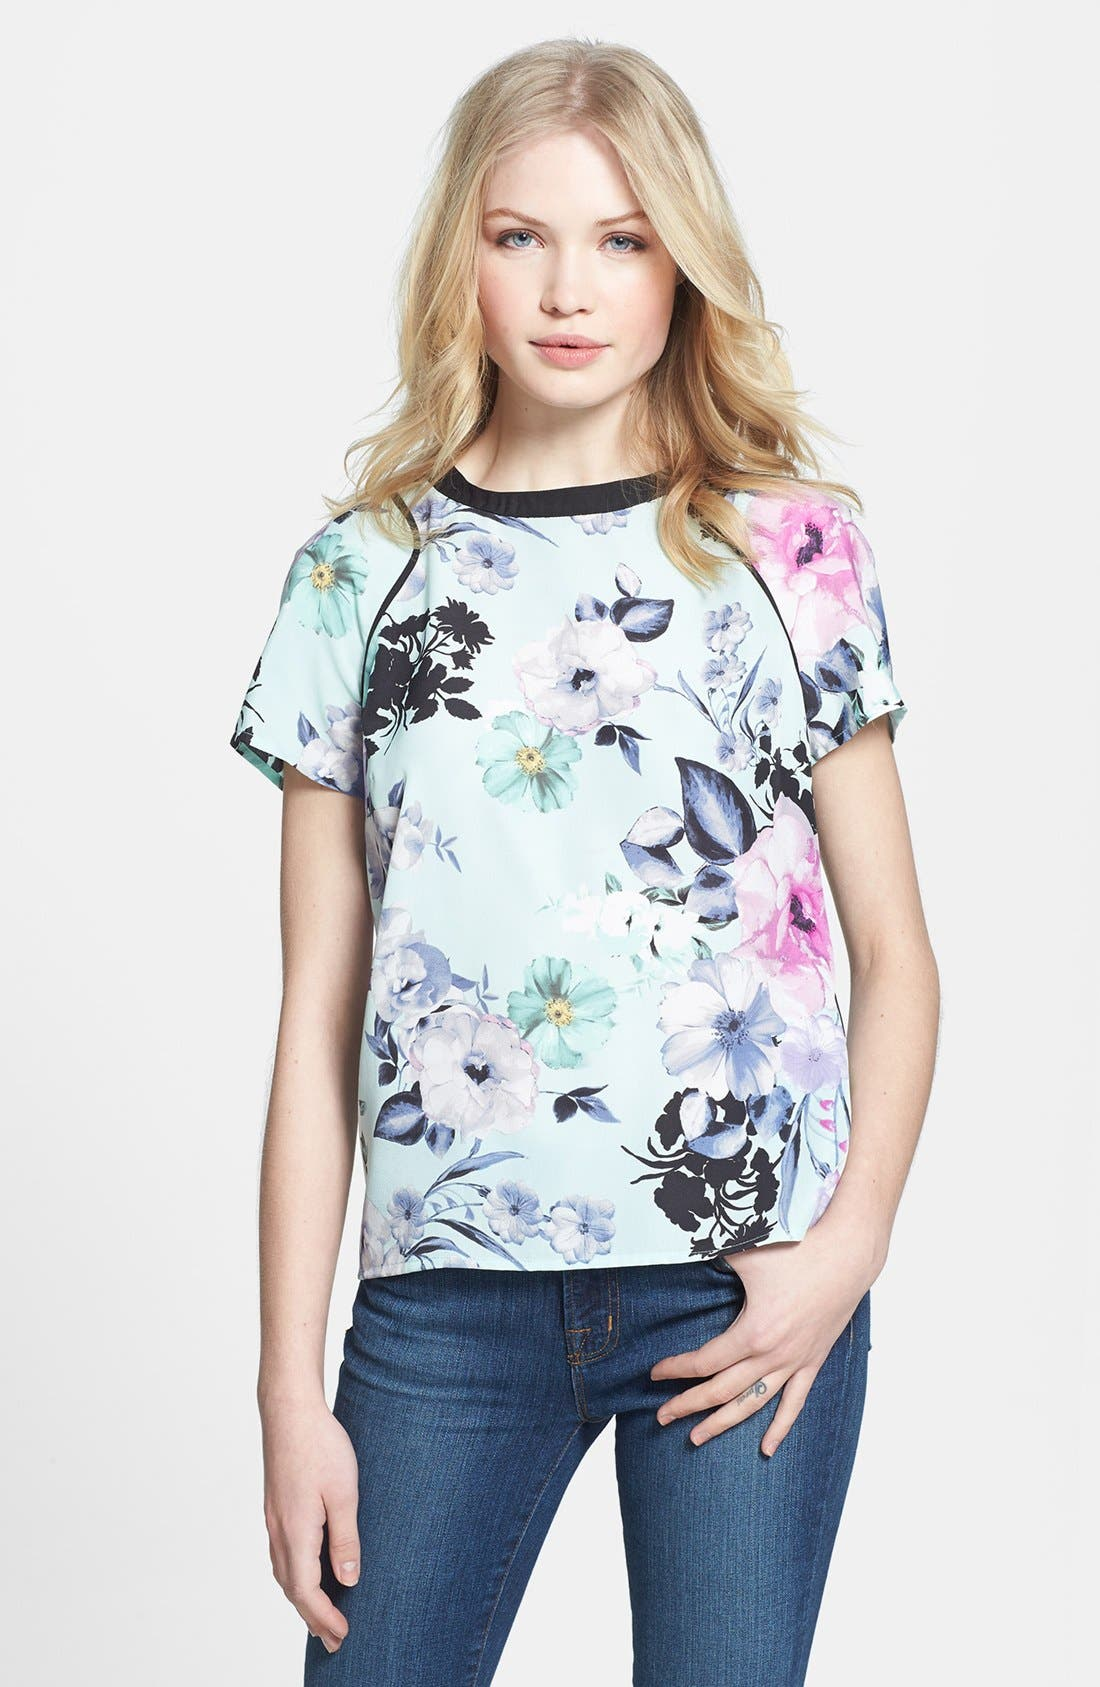 Main Image - 1.STATE Floral Print Tee